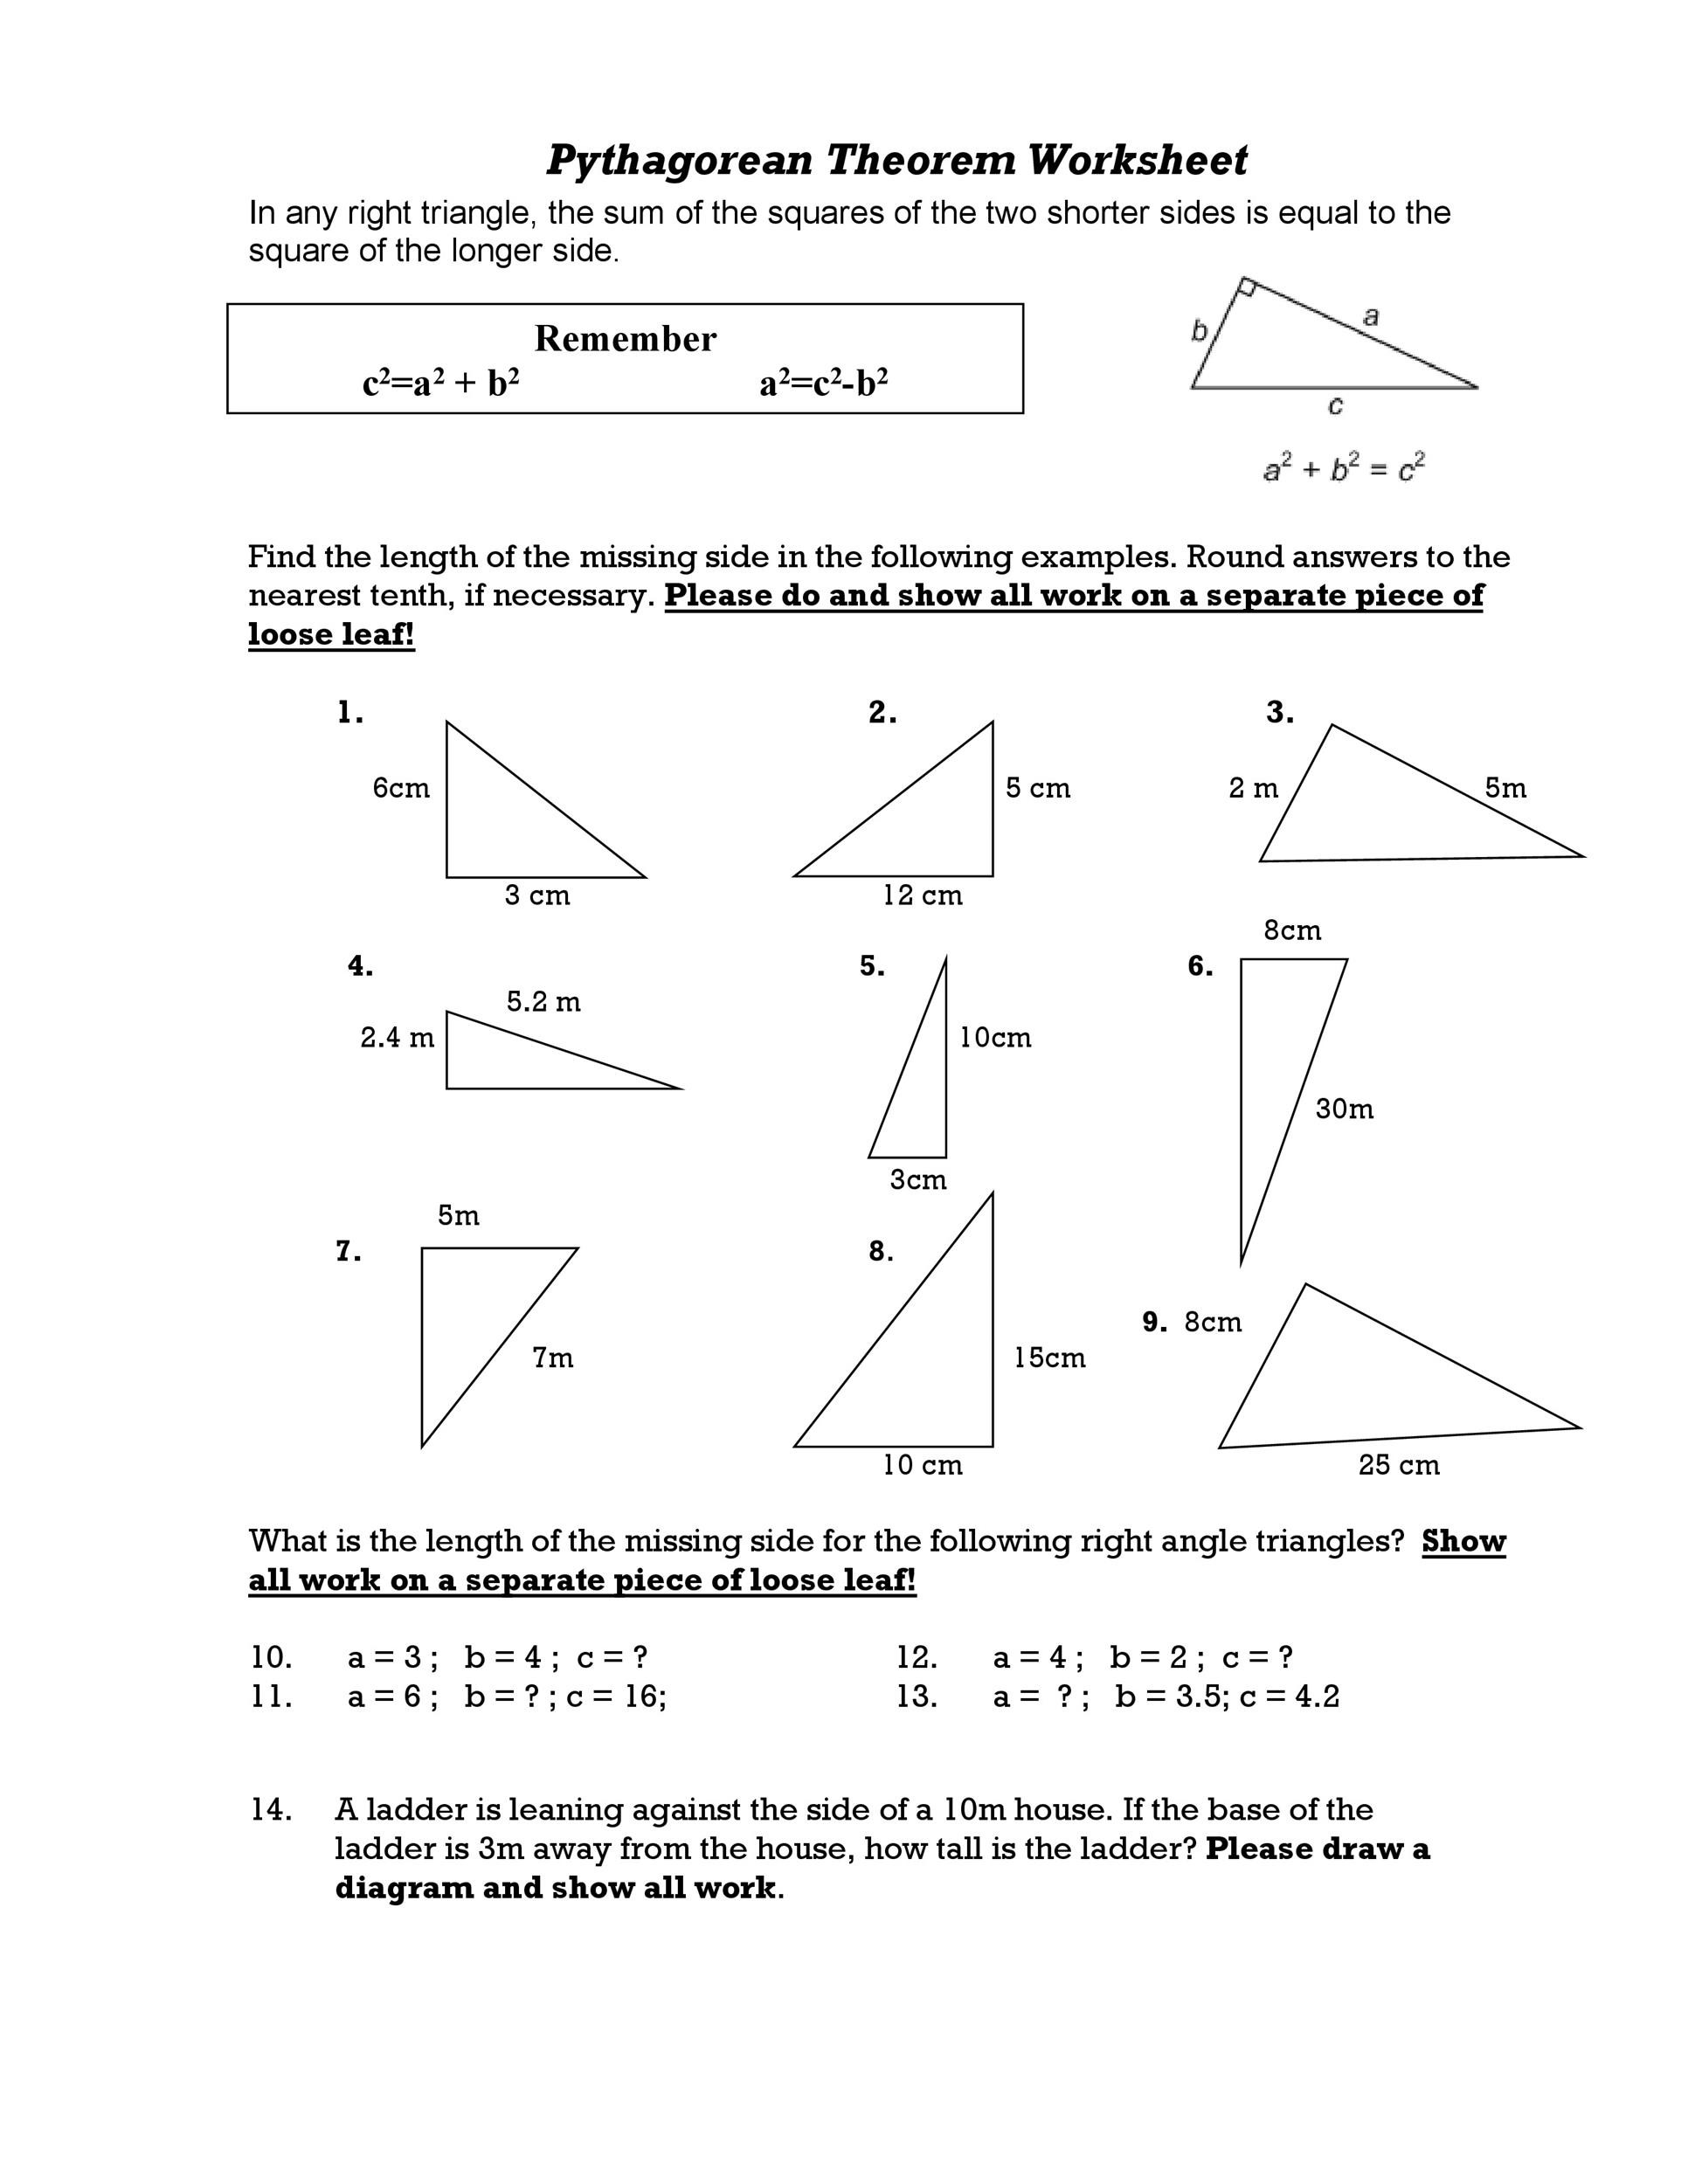 pythagorean theorem applications worksheet the best and most comprehensive worksheets. Black Bedroom Furniture Sets. Home Design Ideas